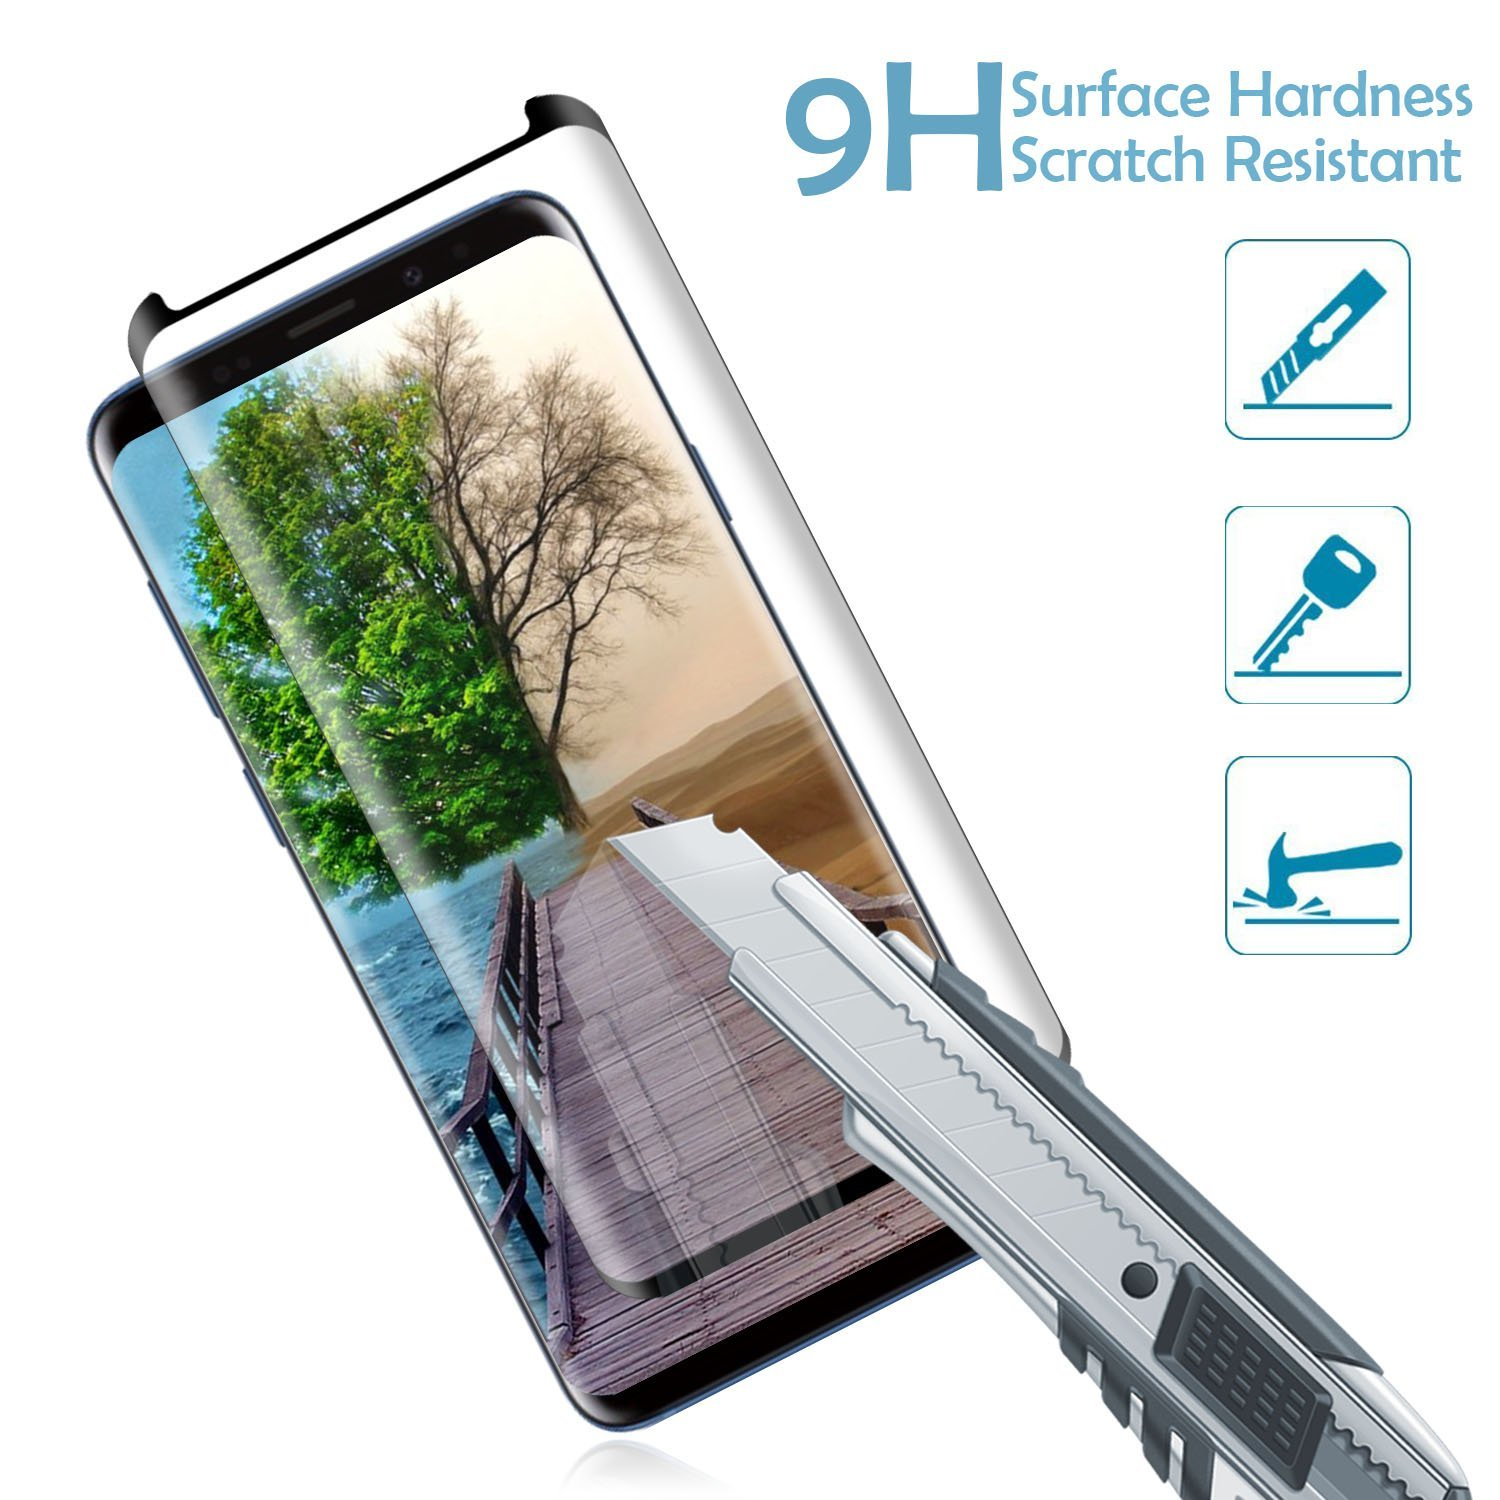 Galaxy S9 Screen Protector Tempered Glass for Samsung S9 AILIBOTE 3D Curved Dot Matrix 2 Pack Case Friendly Glass Screen Protector Full Screen Coverage Update Version